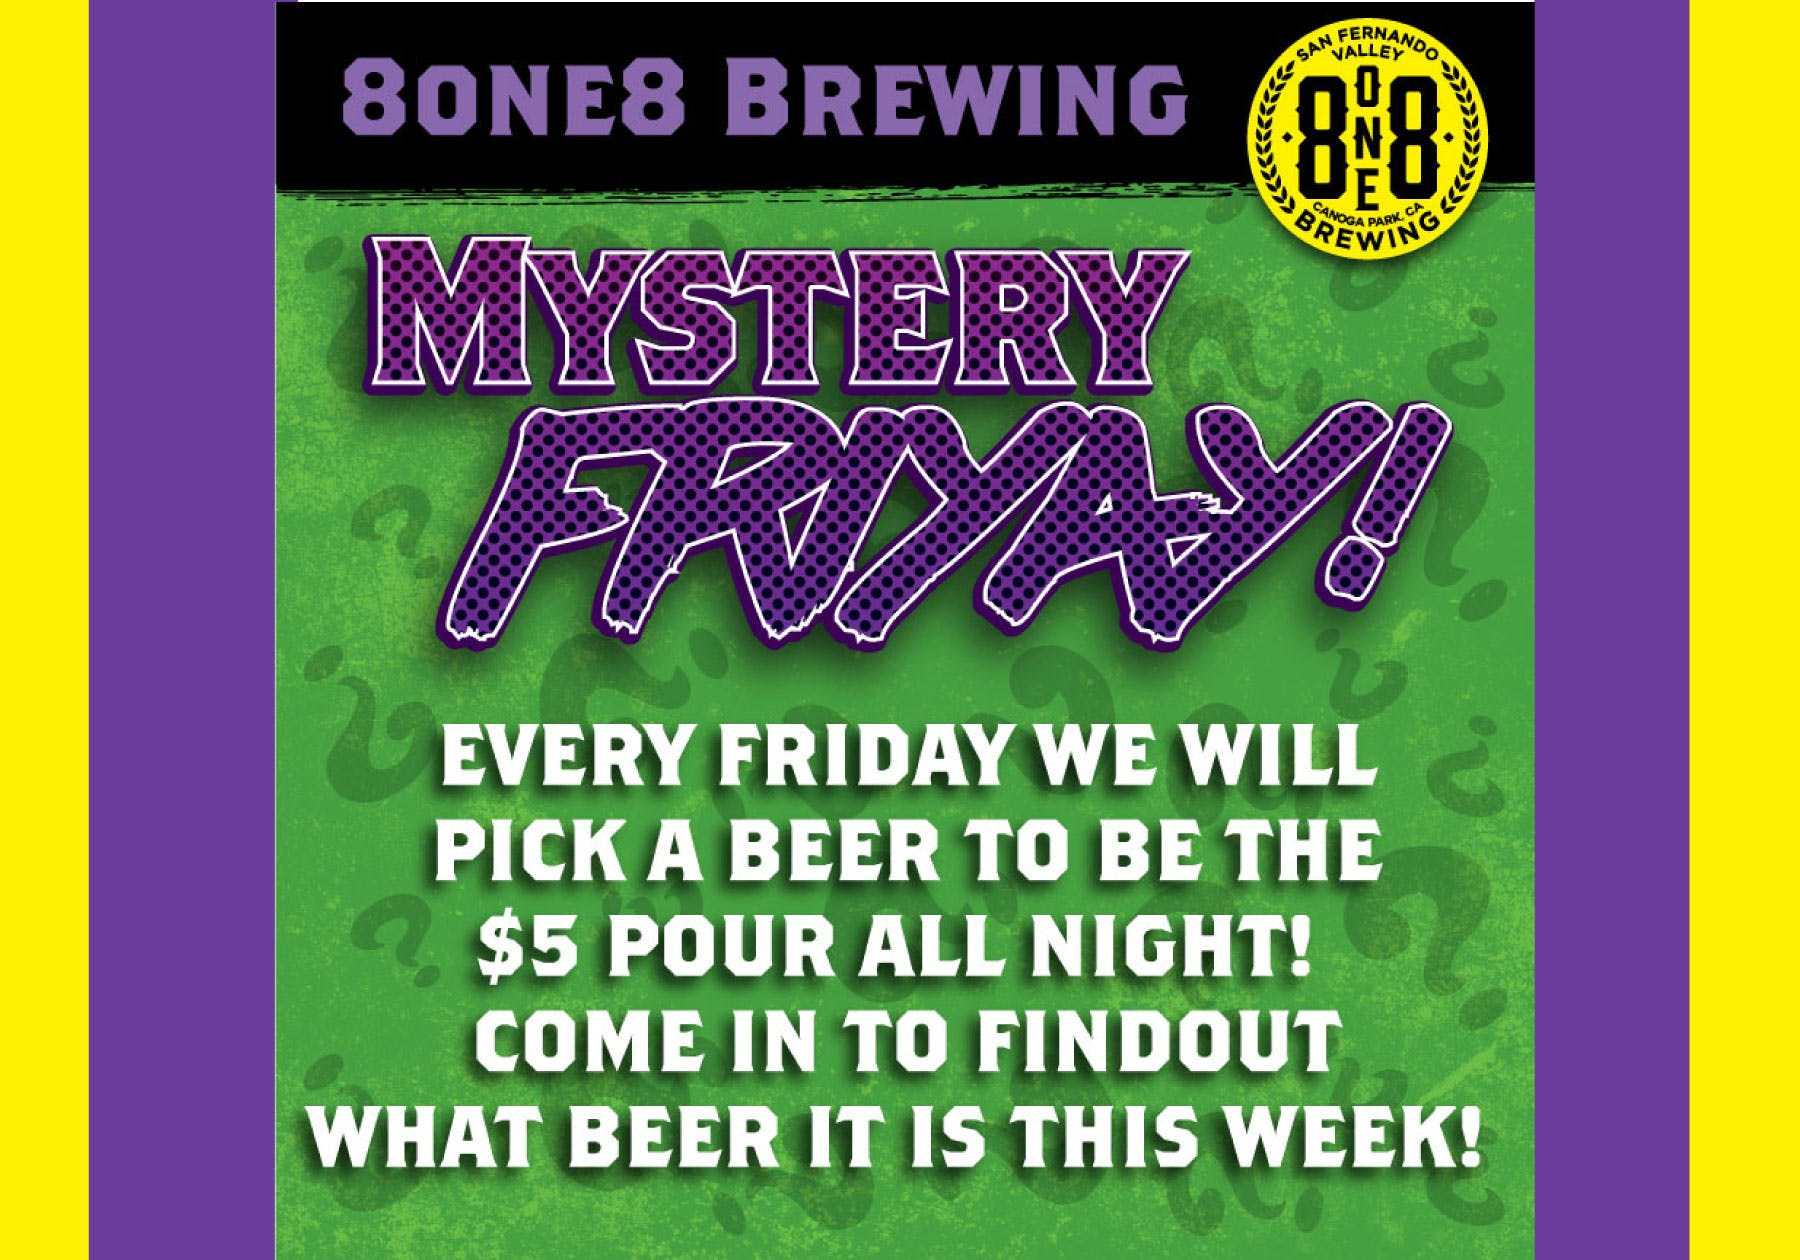 $5 beer special friday